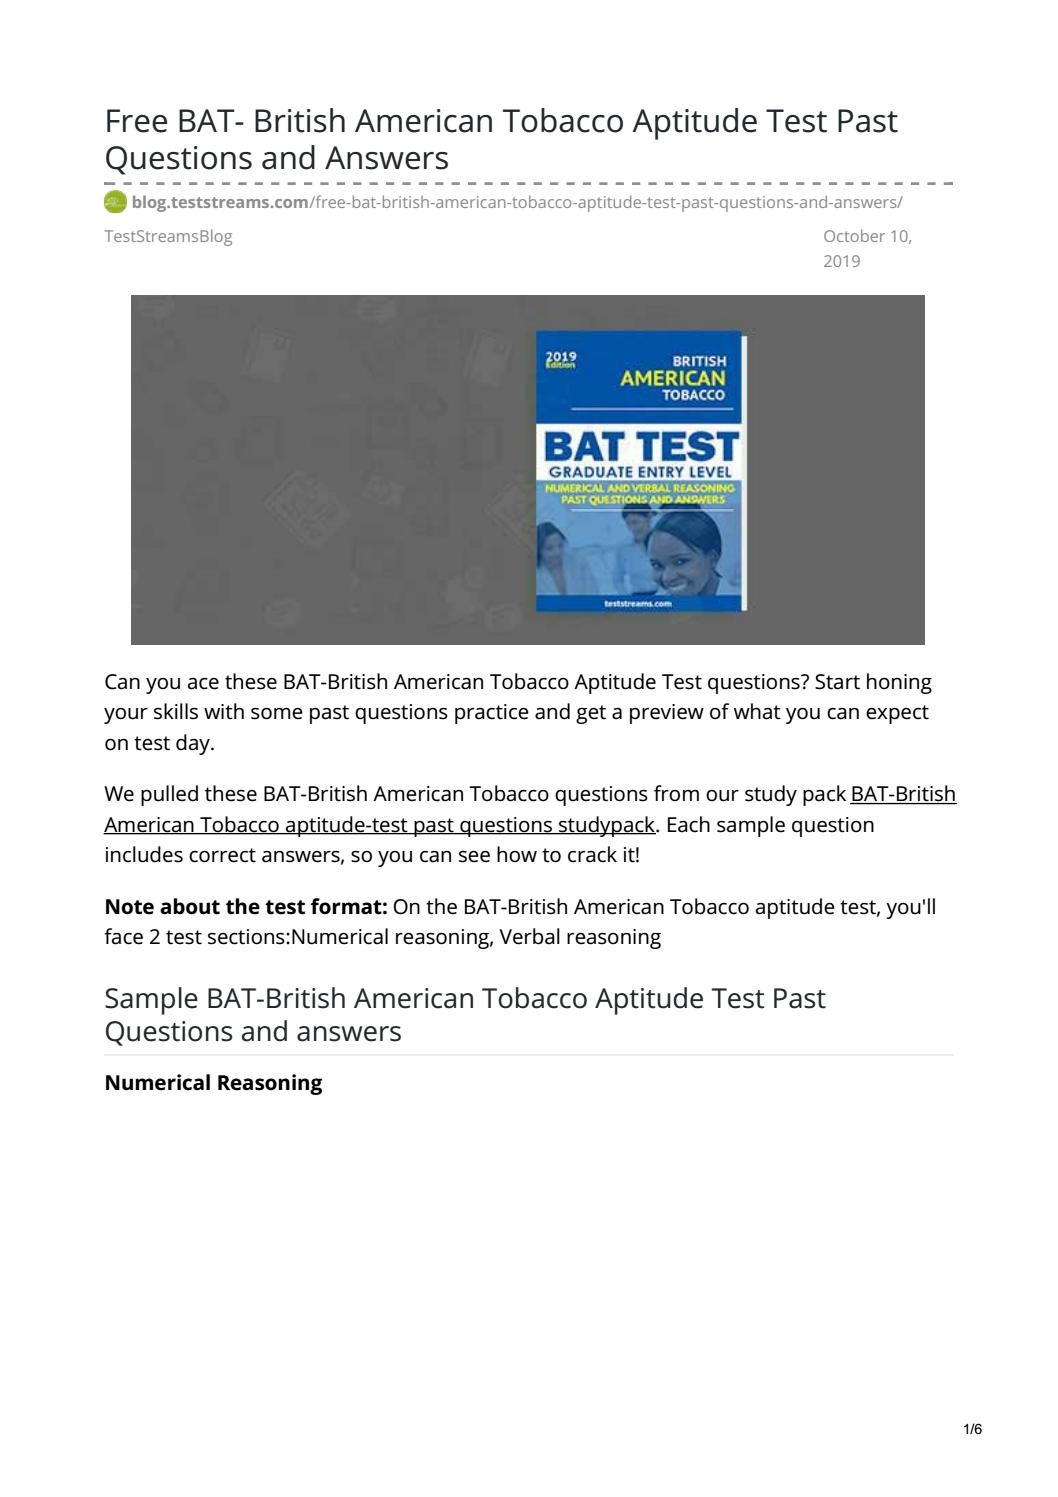 Free Bat British American Tobacco Aptitude Test Past Questions And Answers By Teststreams Issuu